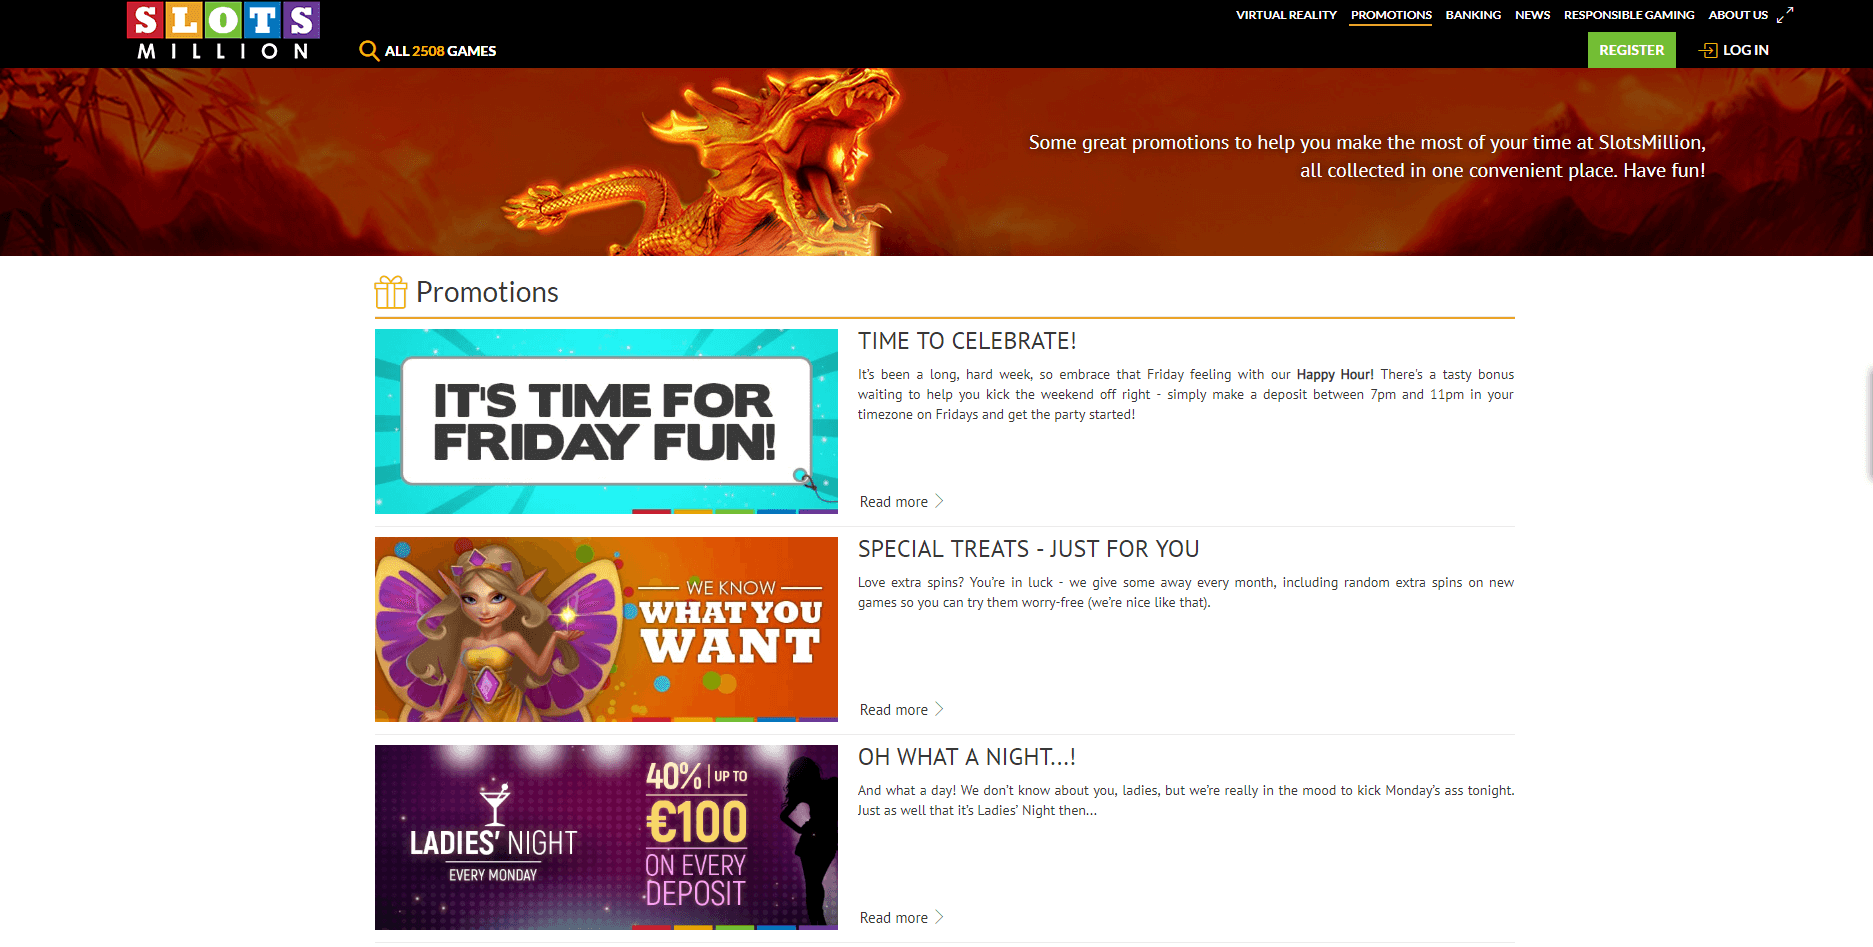 Prism casino free spin codes